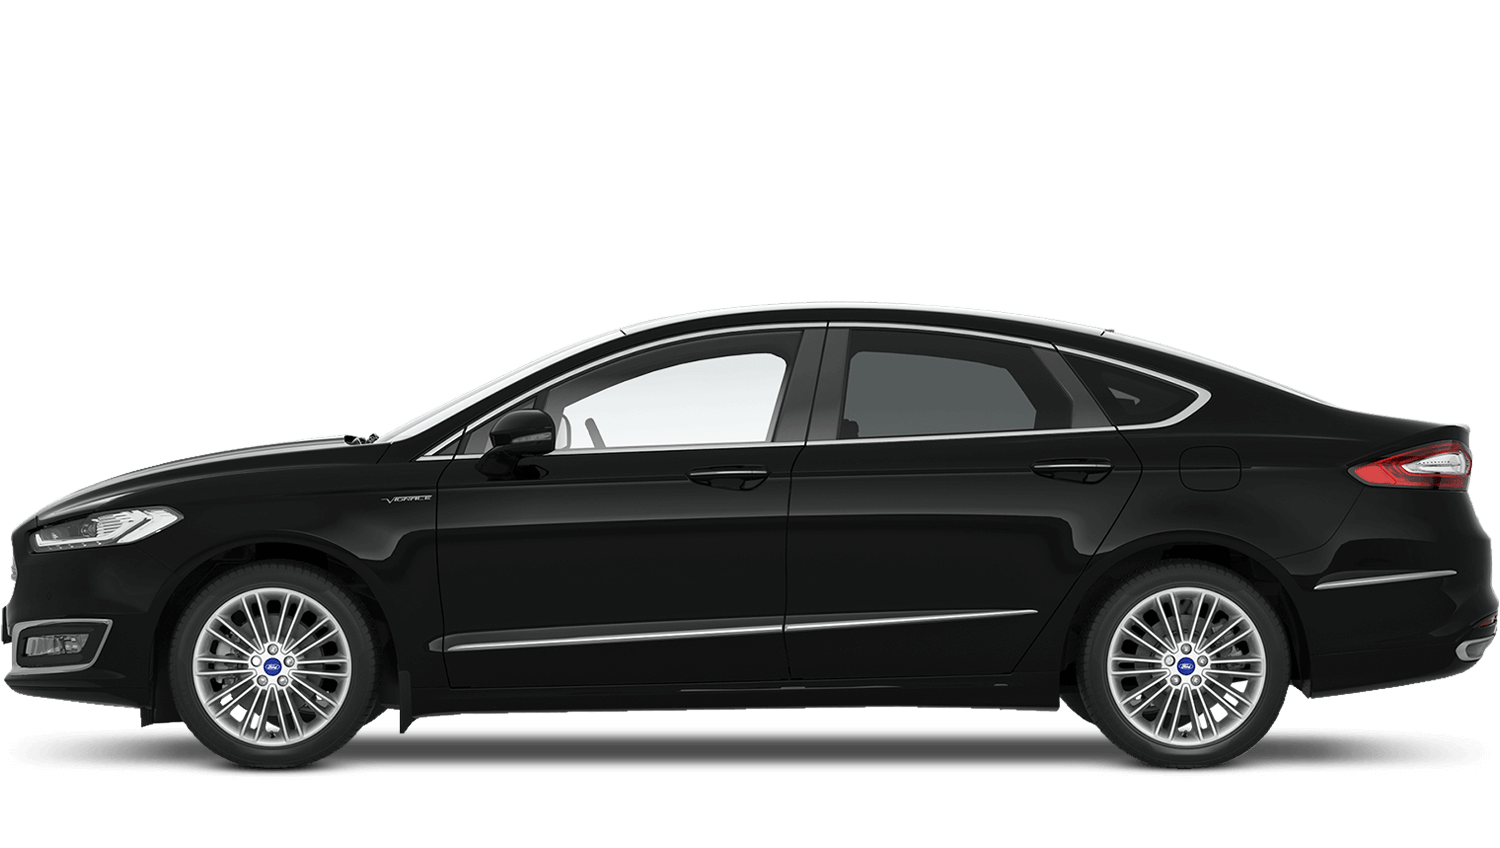 new ford mondeo hybrid vignale hev for sale think ford. Black Bedroom Furniture Sets. Home Design Ideas